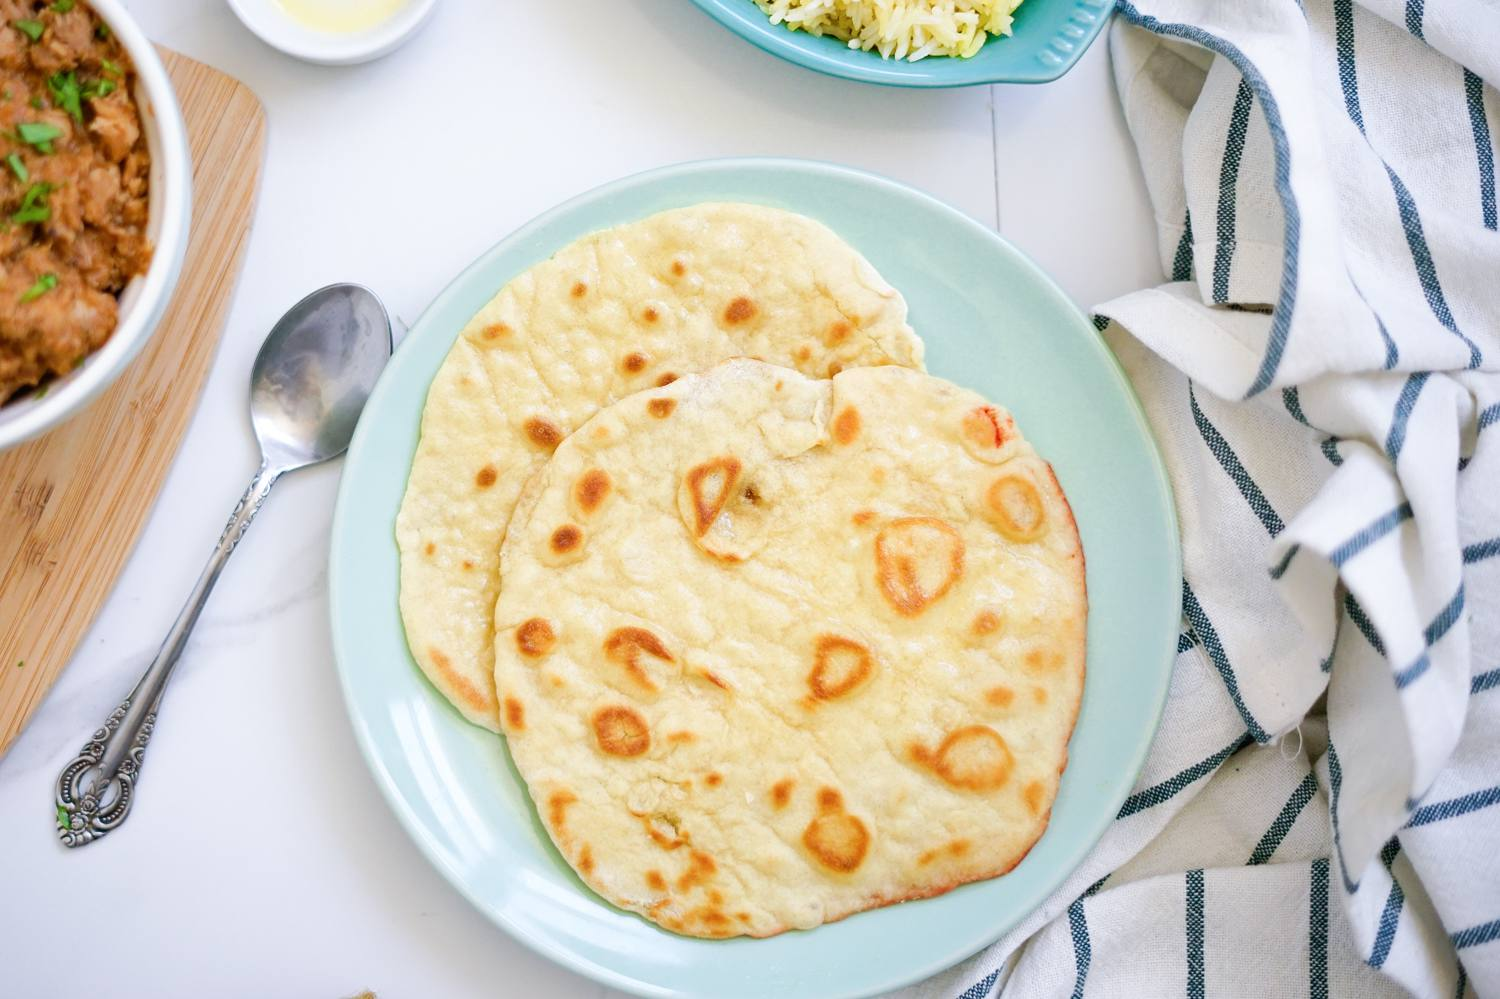 West Indian-style roti flatbread on a plate